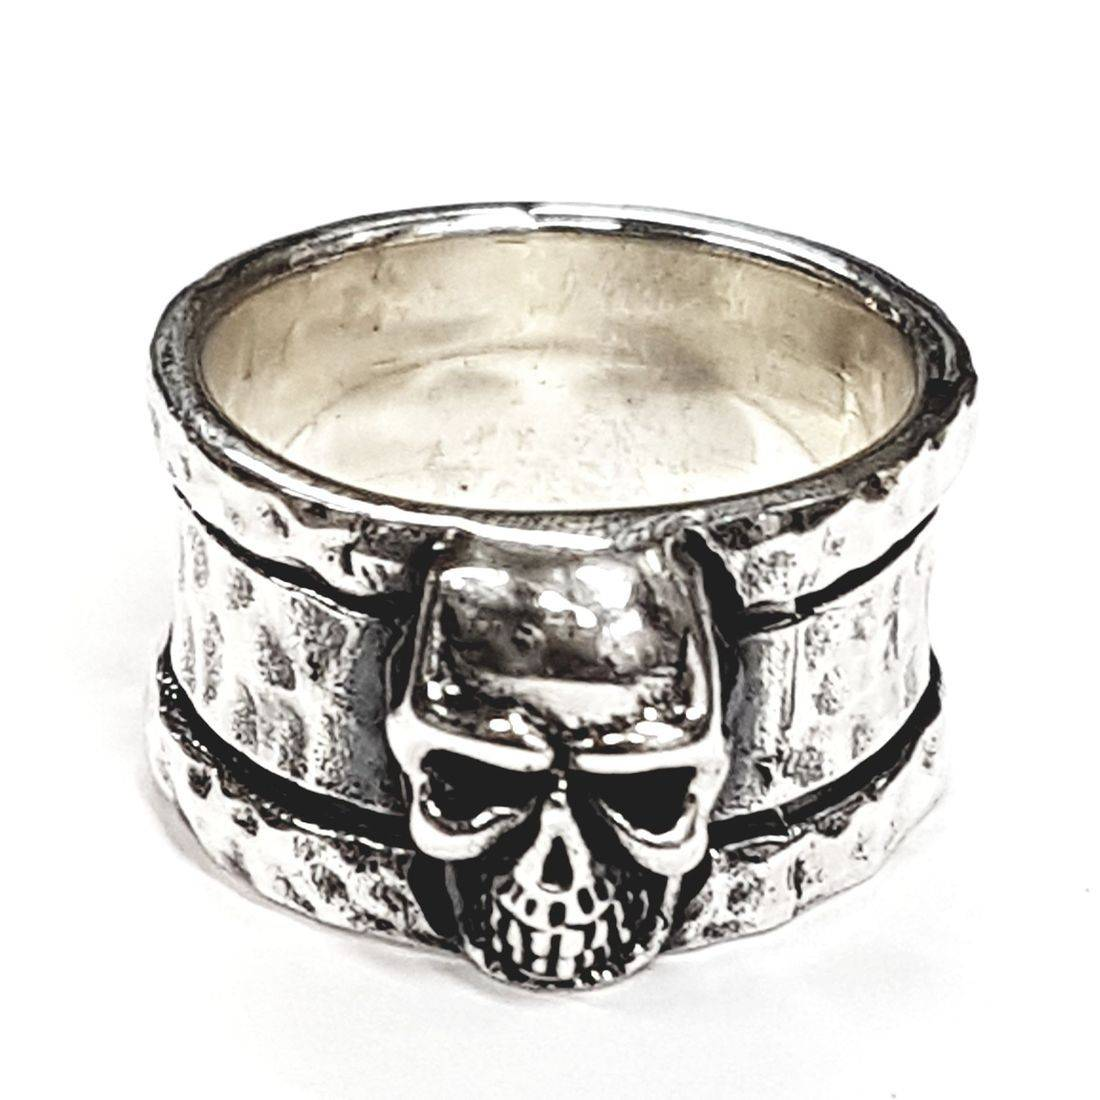 Solid Silver skull rings available at Kazbah online and our Leicester city centre shop